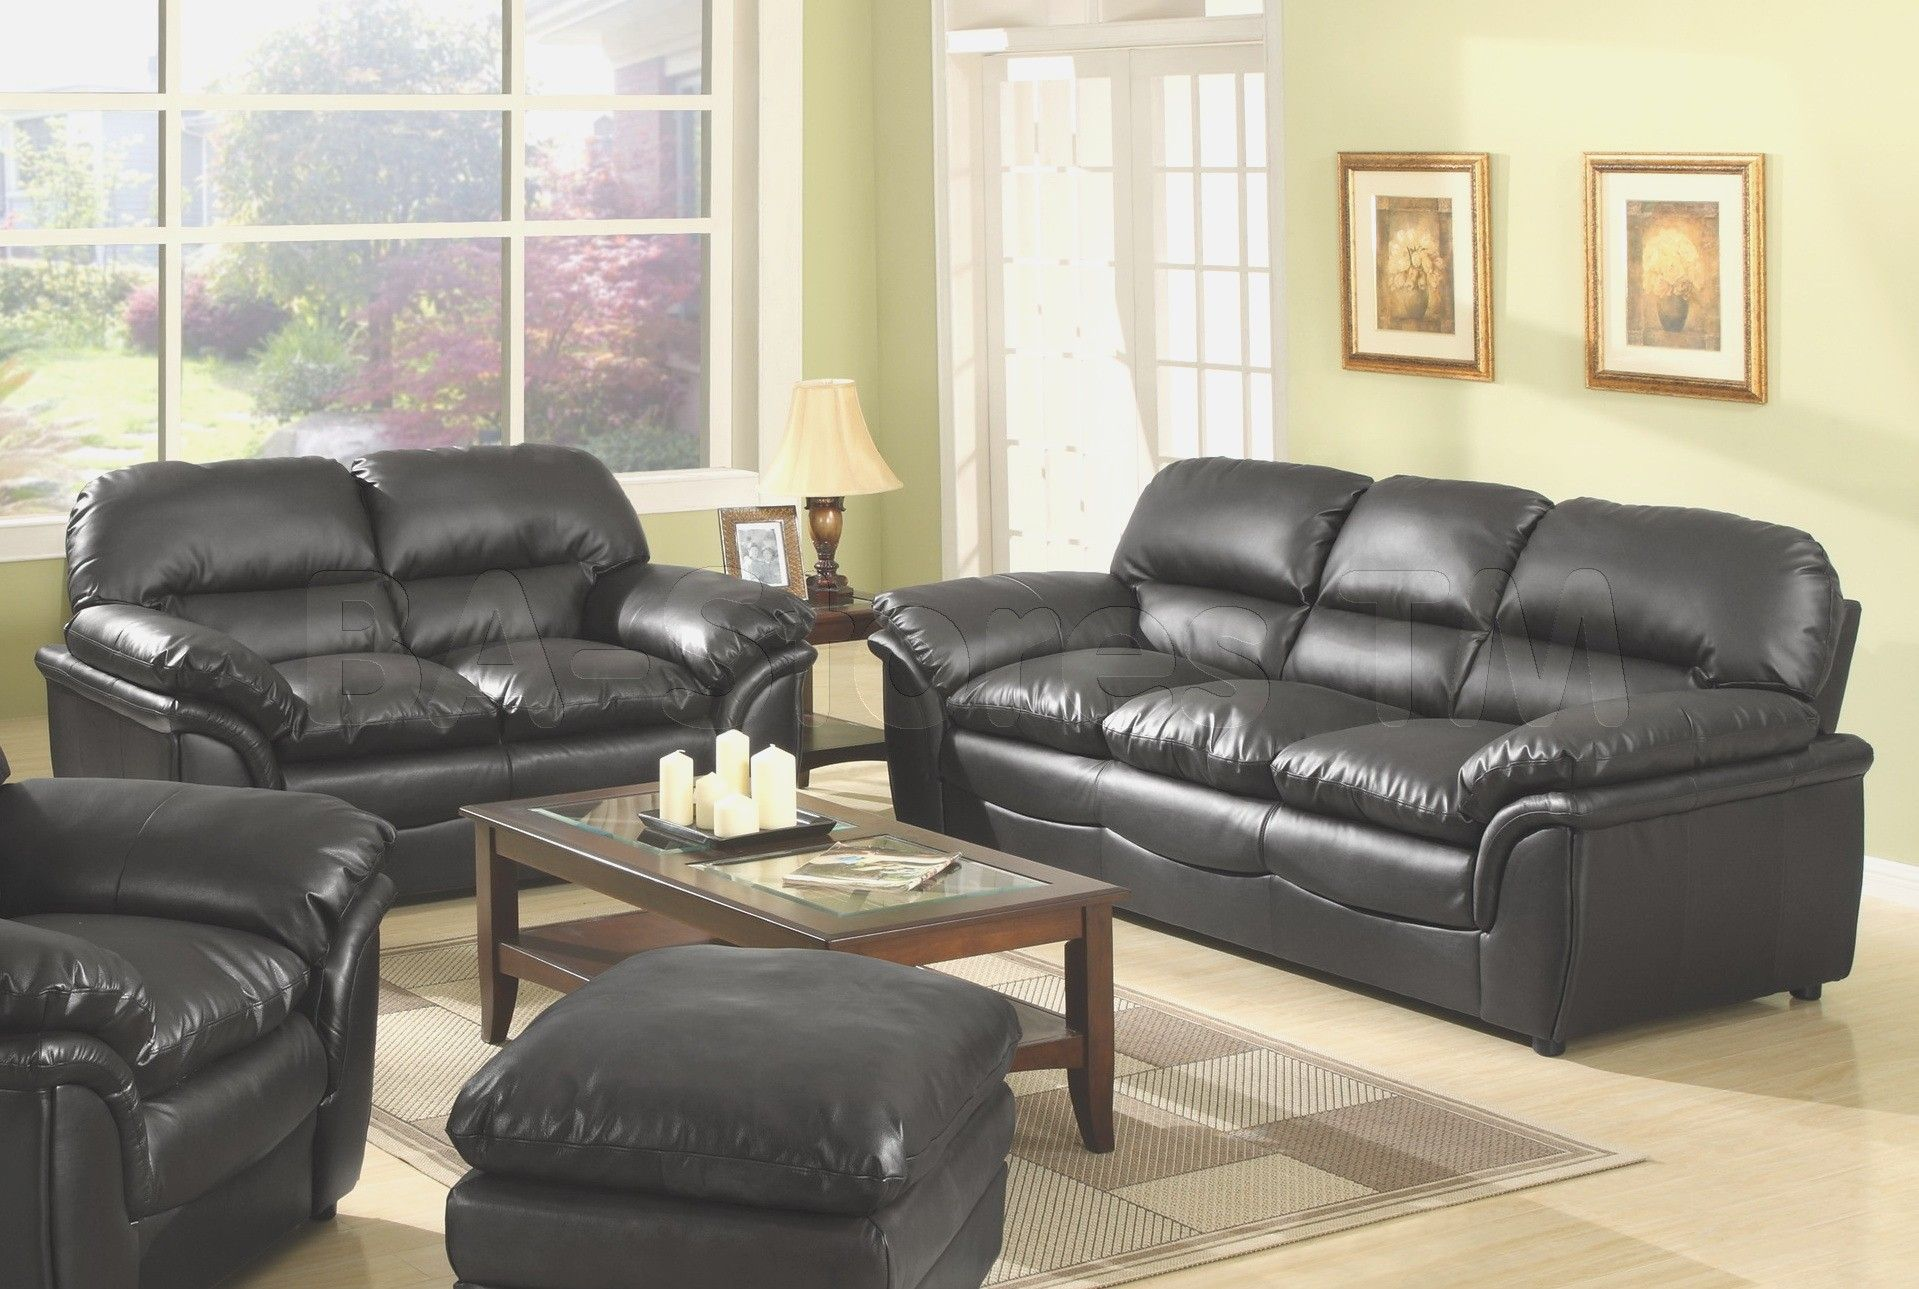 Leather Living Room Furniture Sets Ashley Furniture Leather Living